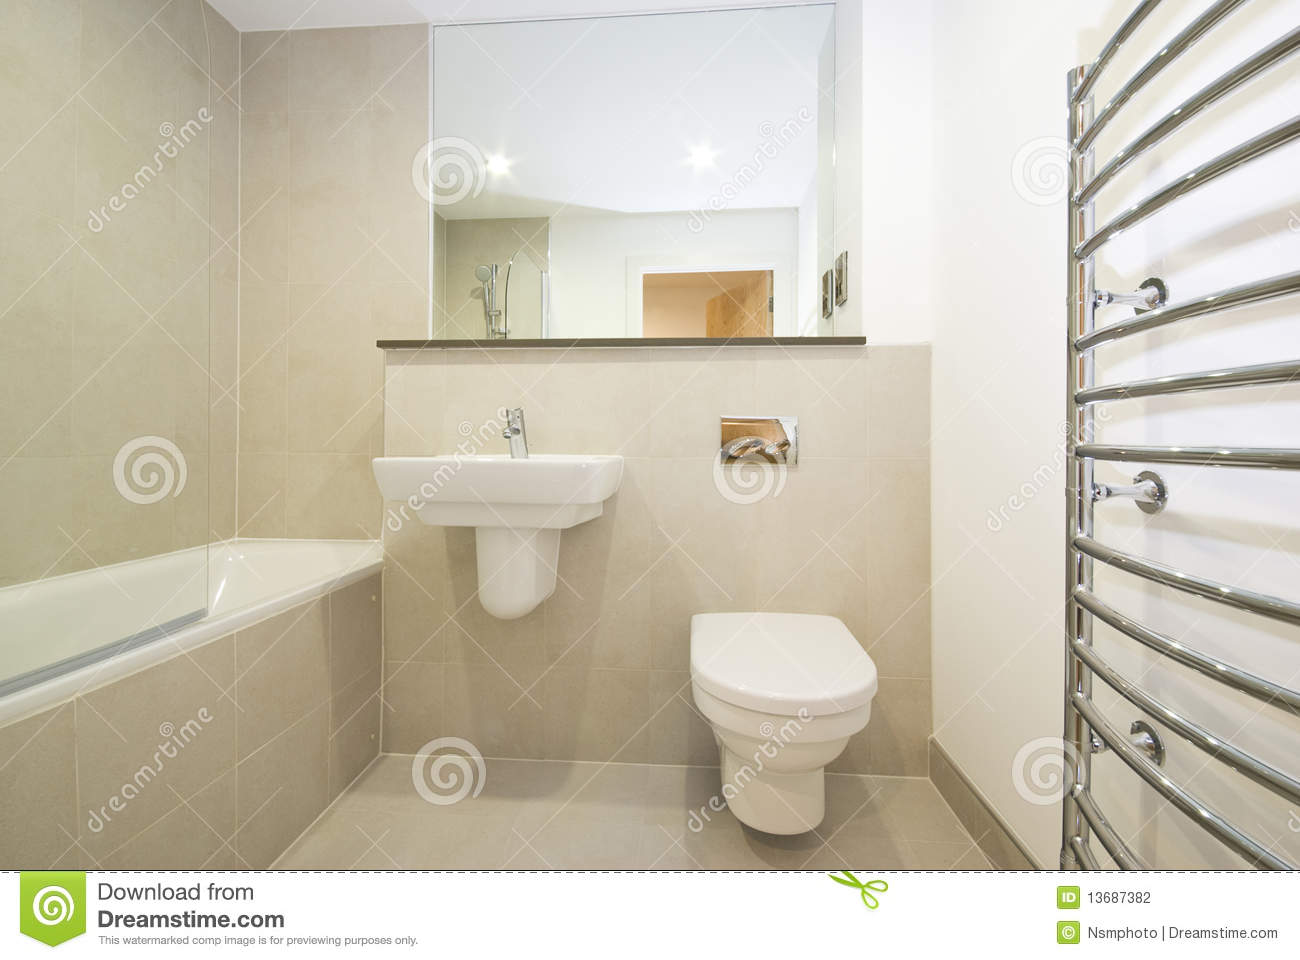 Schon Download Modern En Suie Bathroom In Beige Stock Photo   Image Of Interior,  Basin